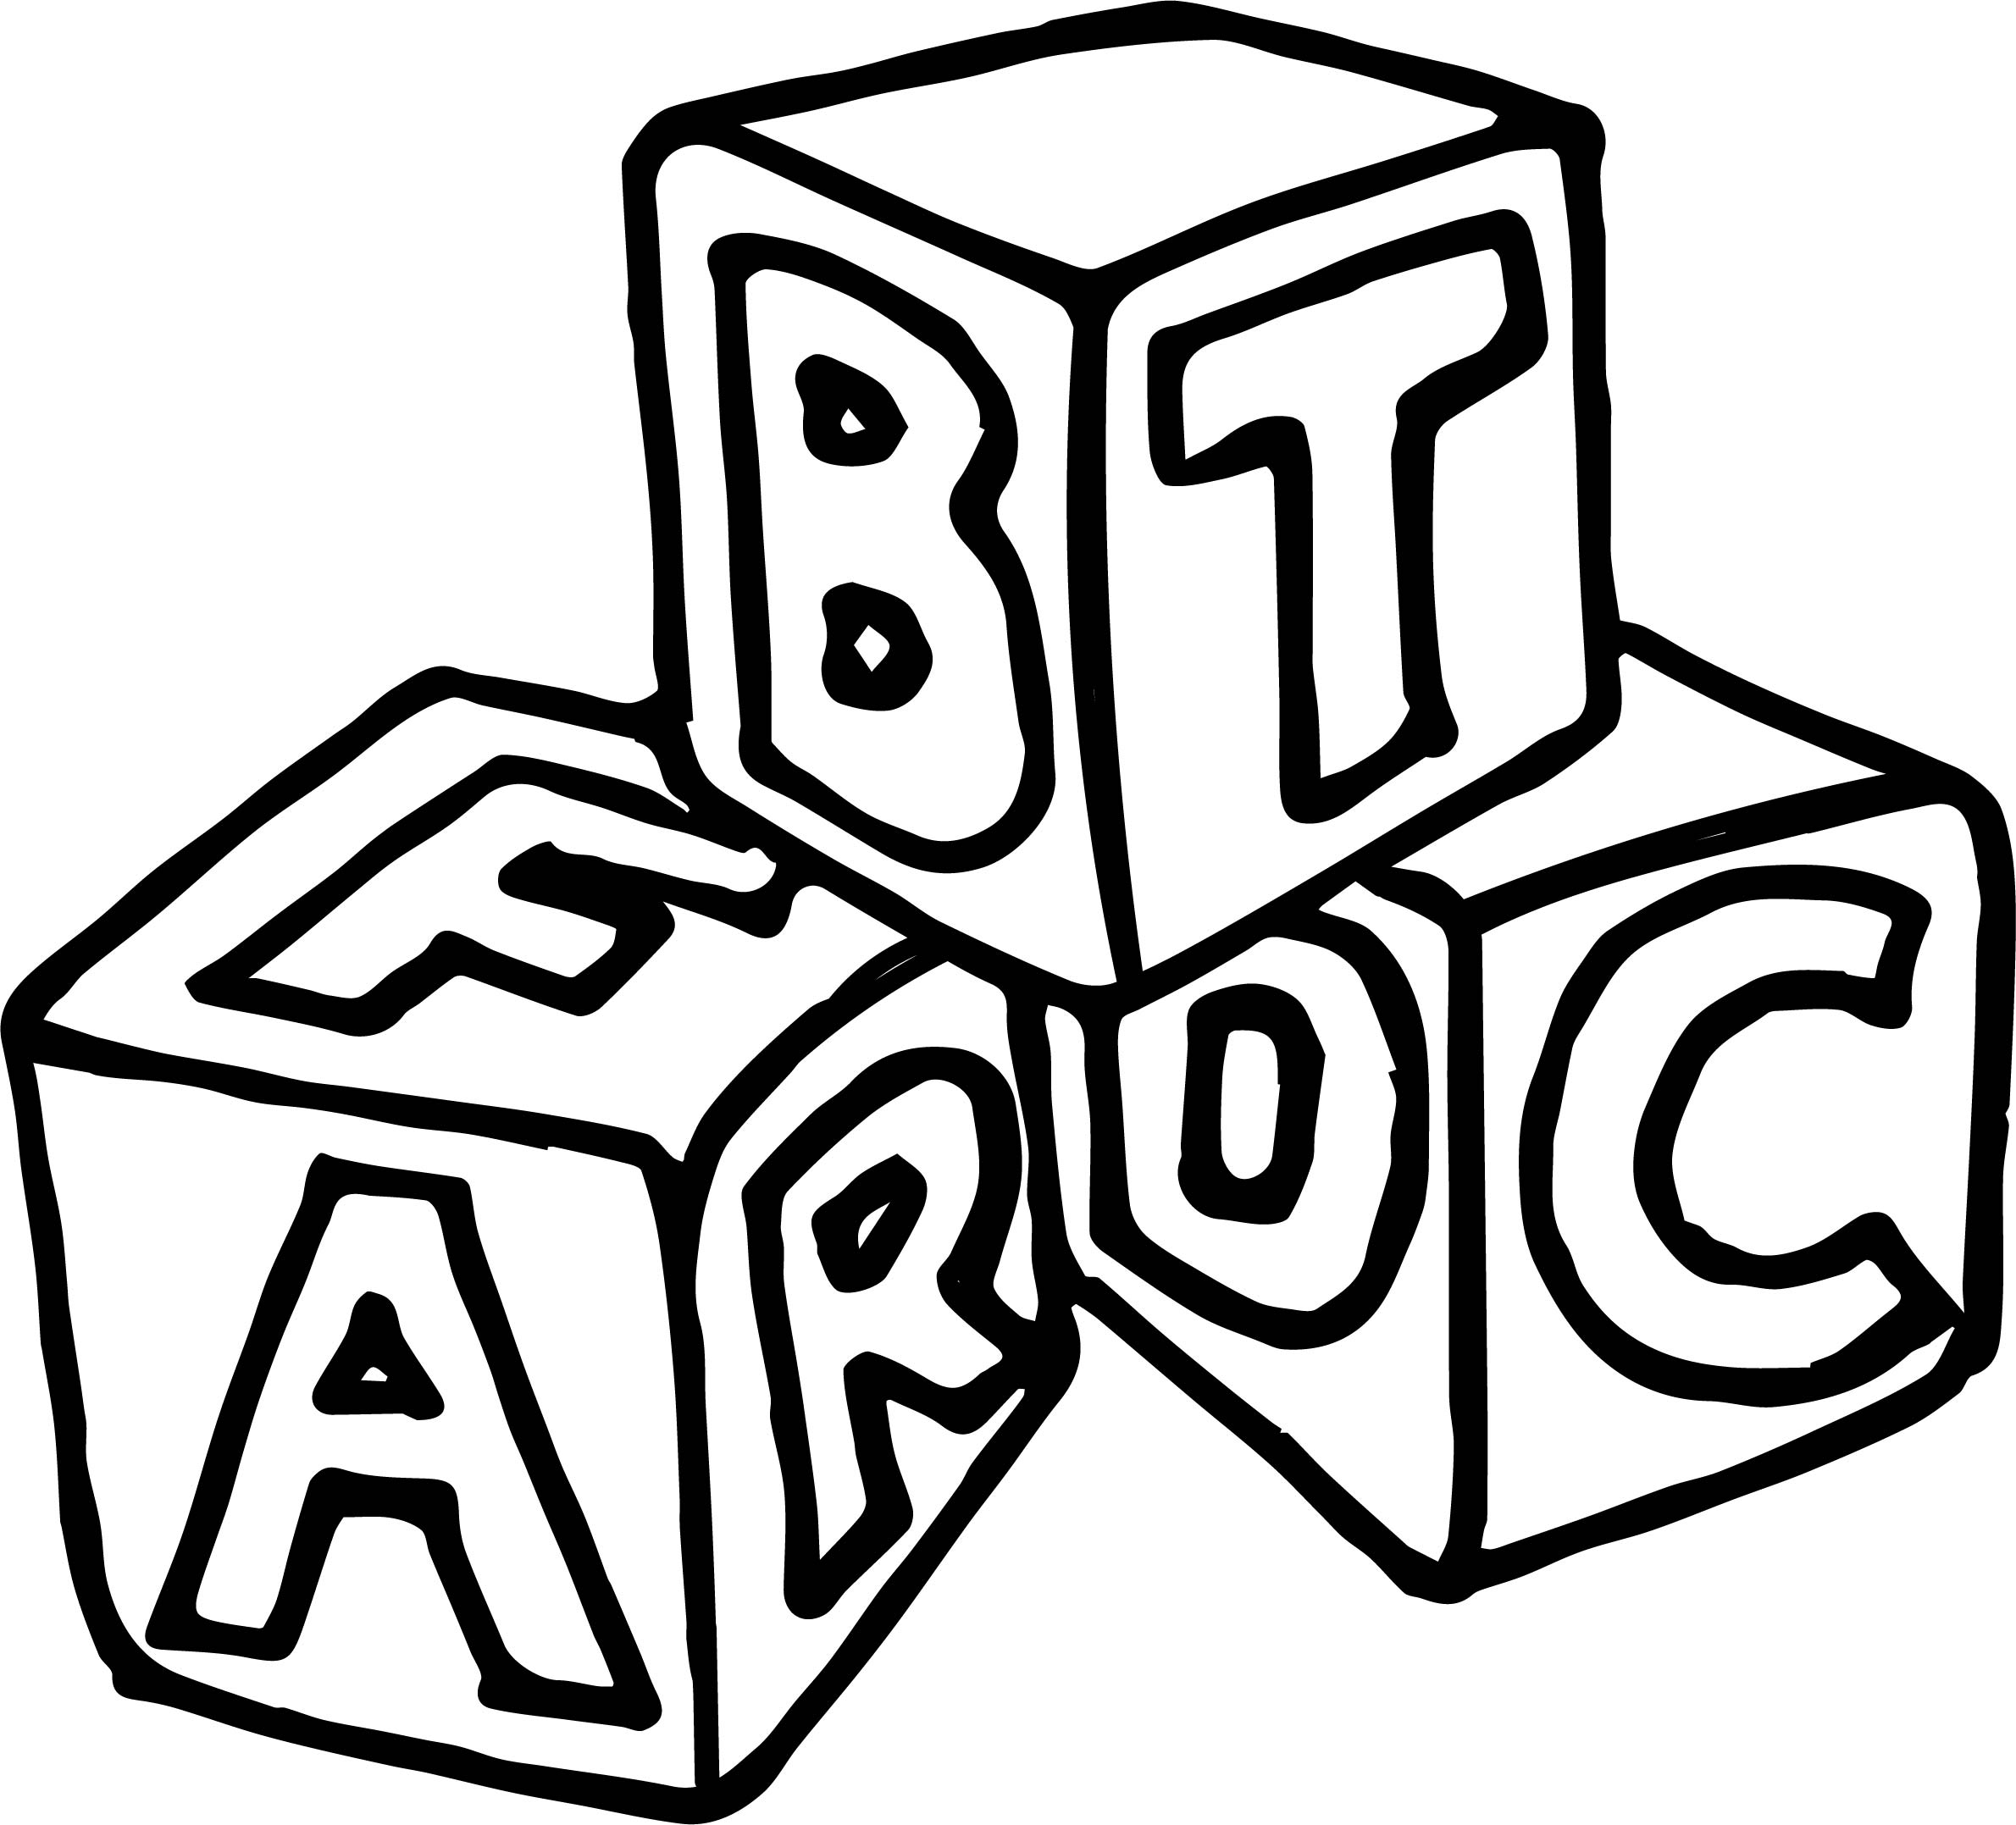 abc and other cube coloring page wecoloringpage